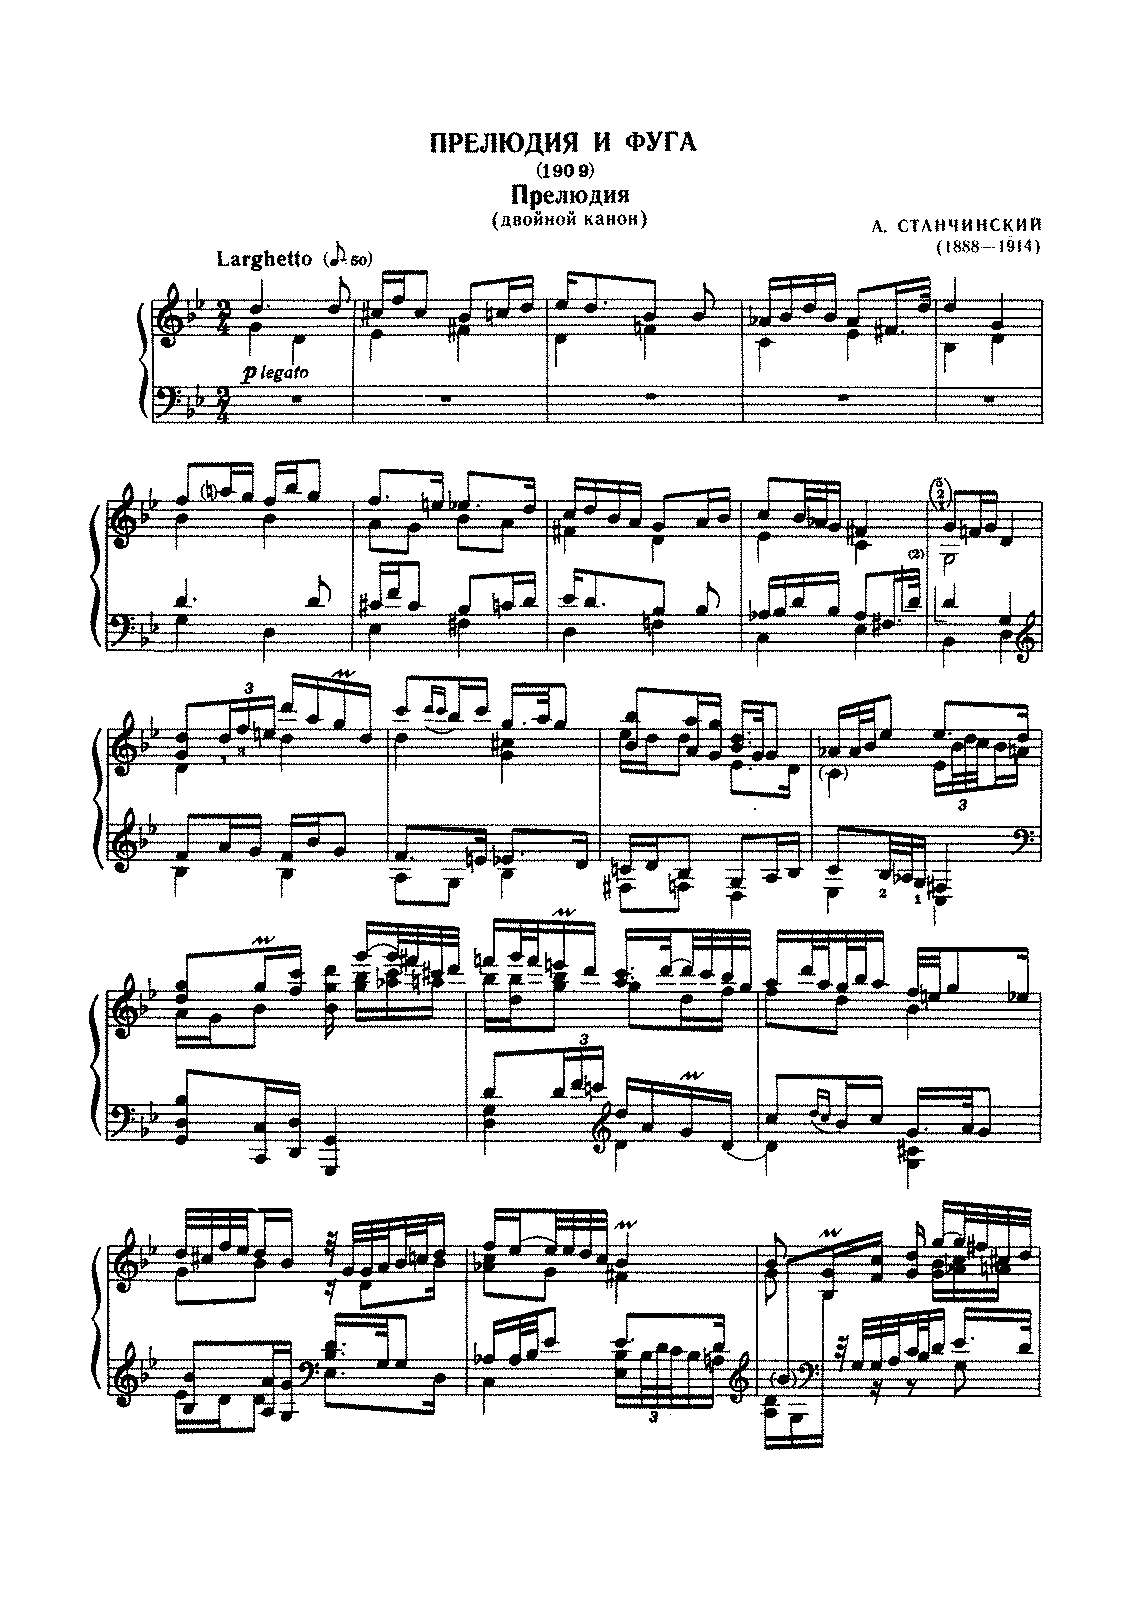 Stanchinsky - Prelude and Fugue.pdf